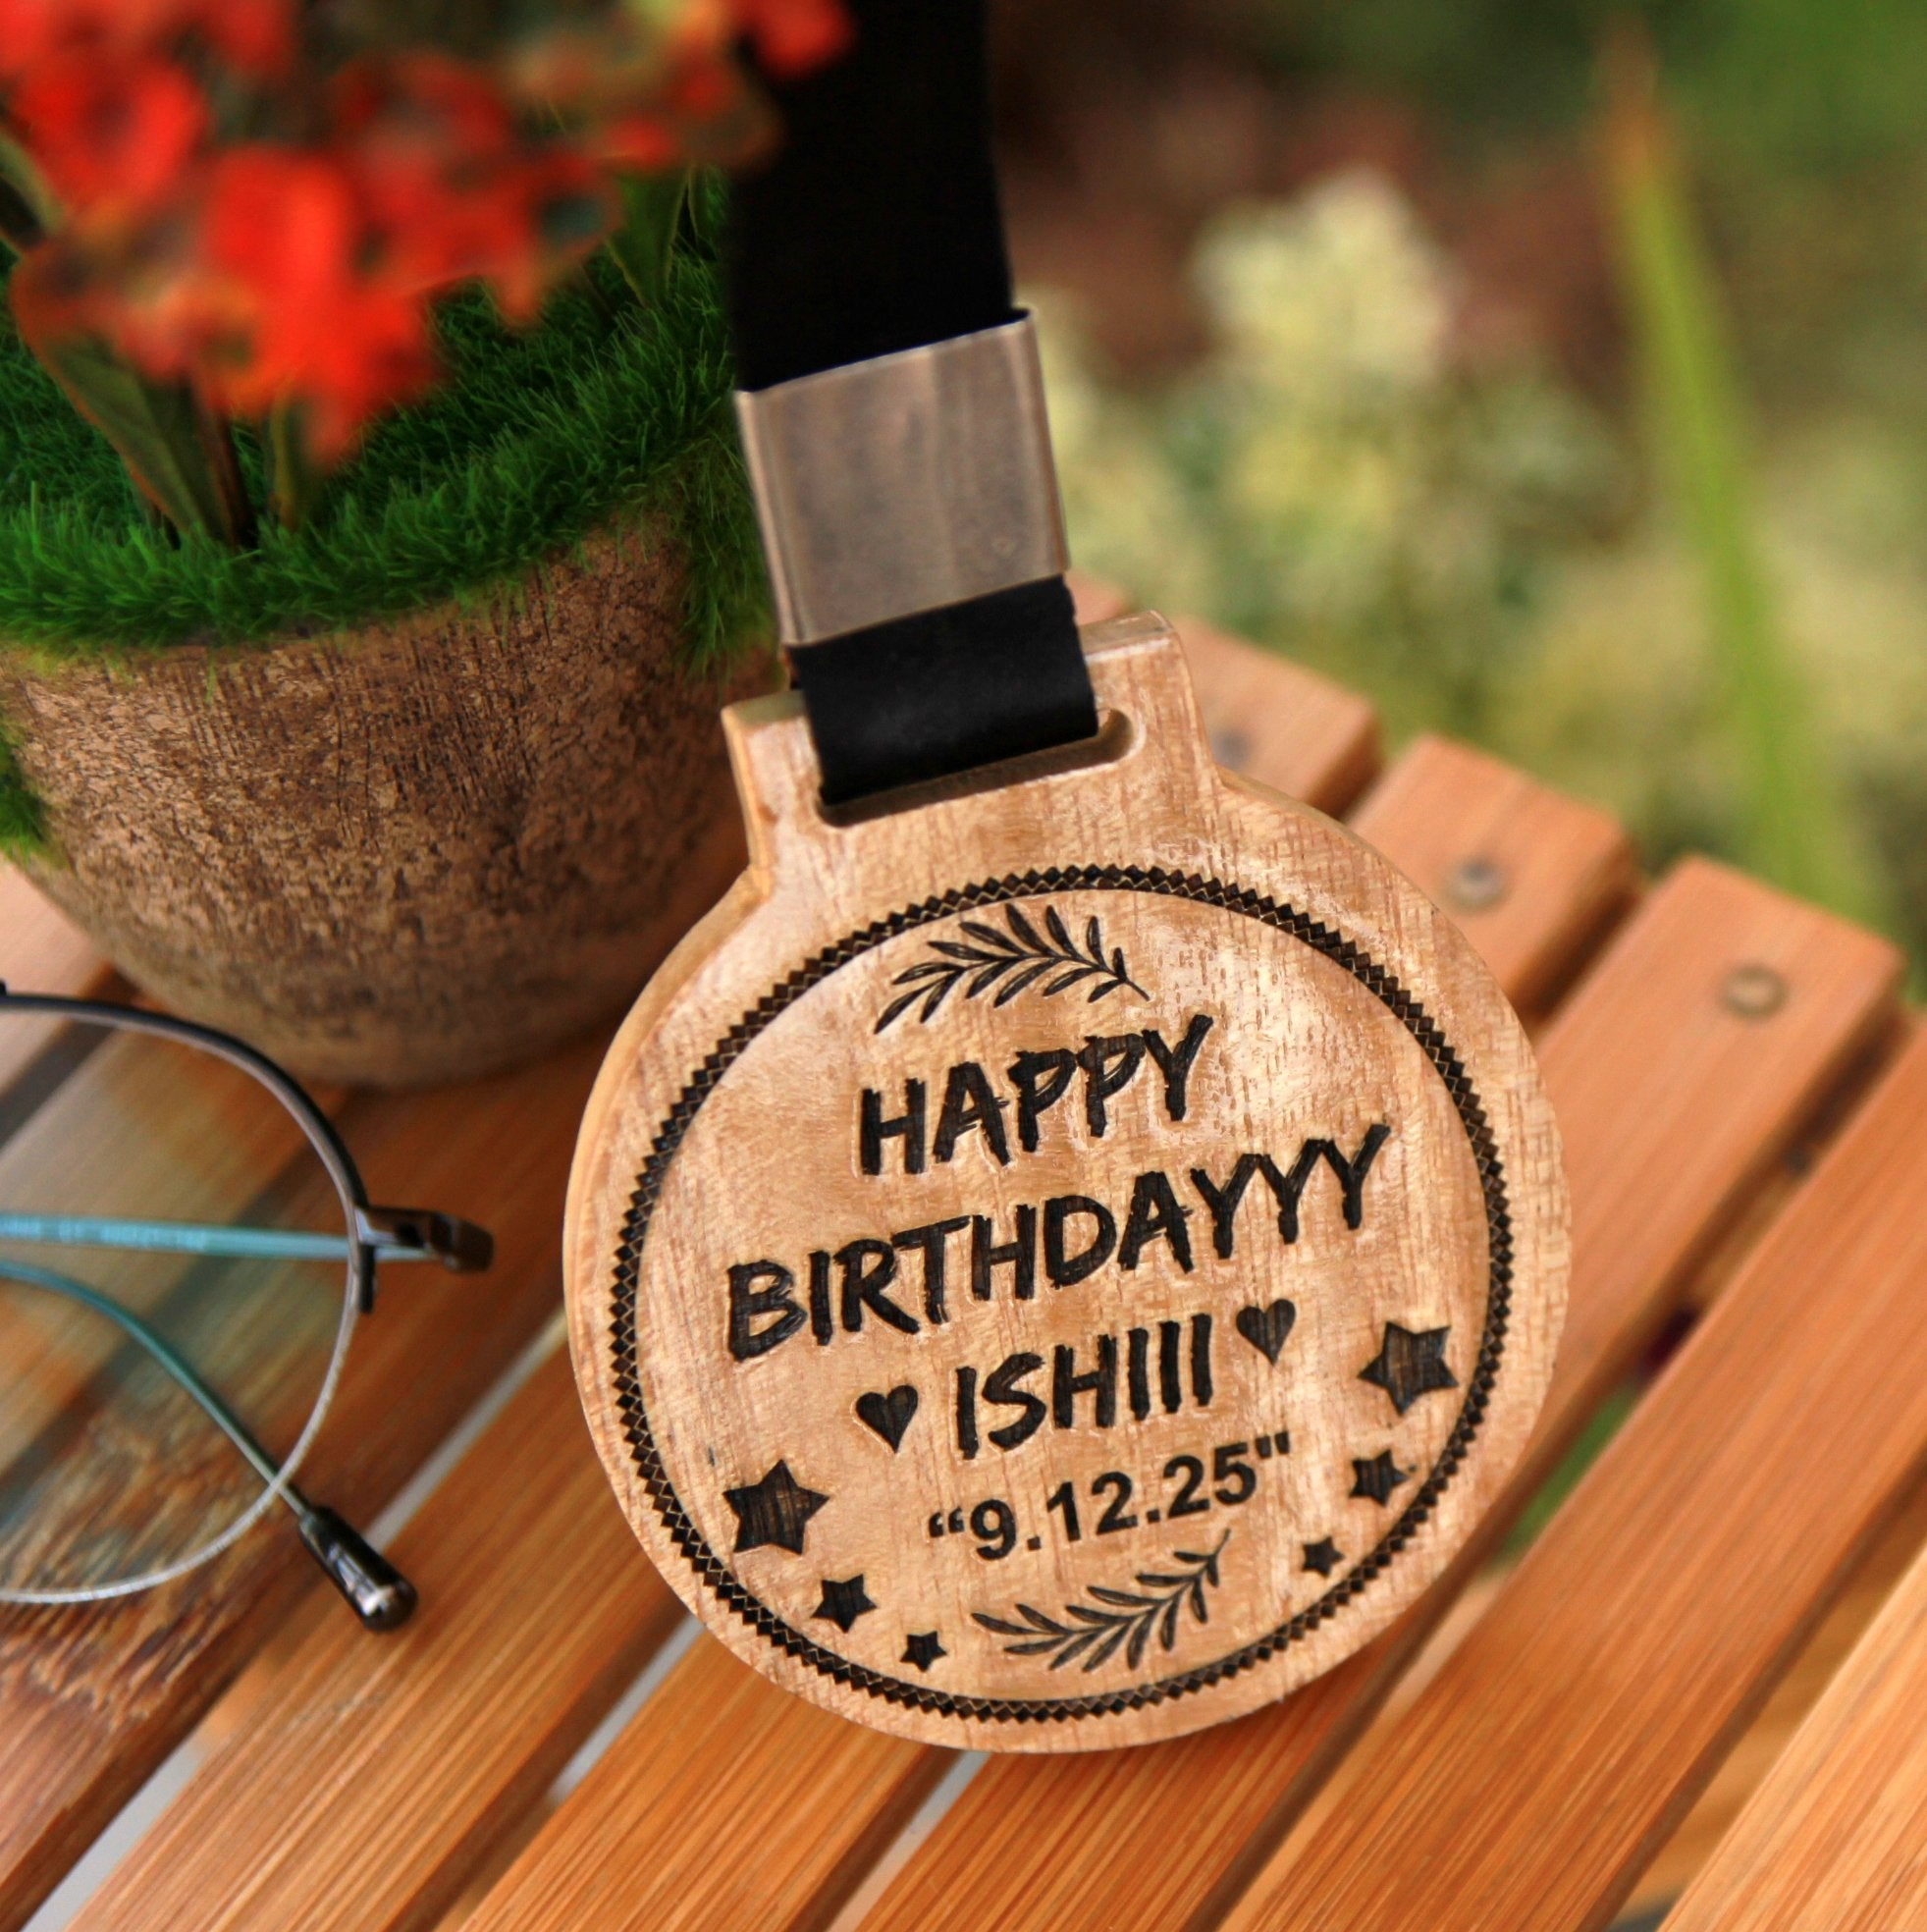 Custom Medals As Birthday Gifts For Her Customised With A Birthday Message